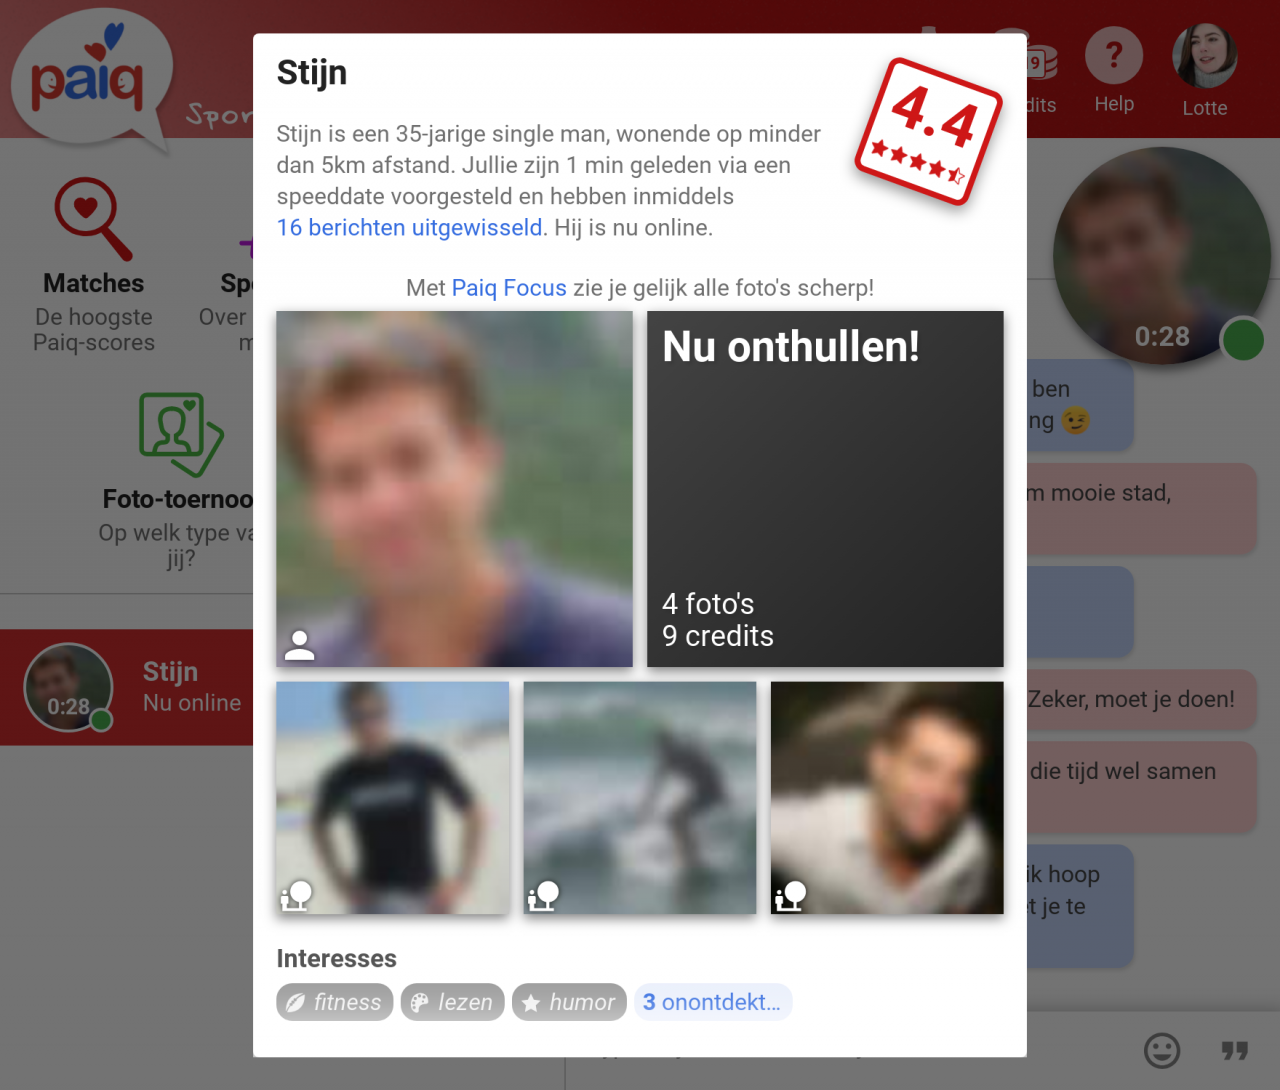 A/b testen online dating